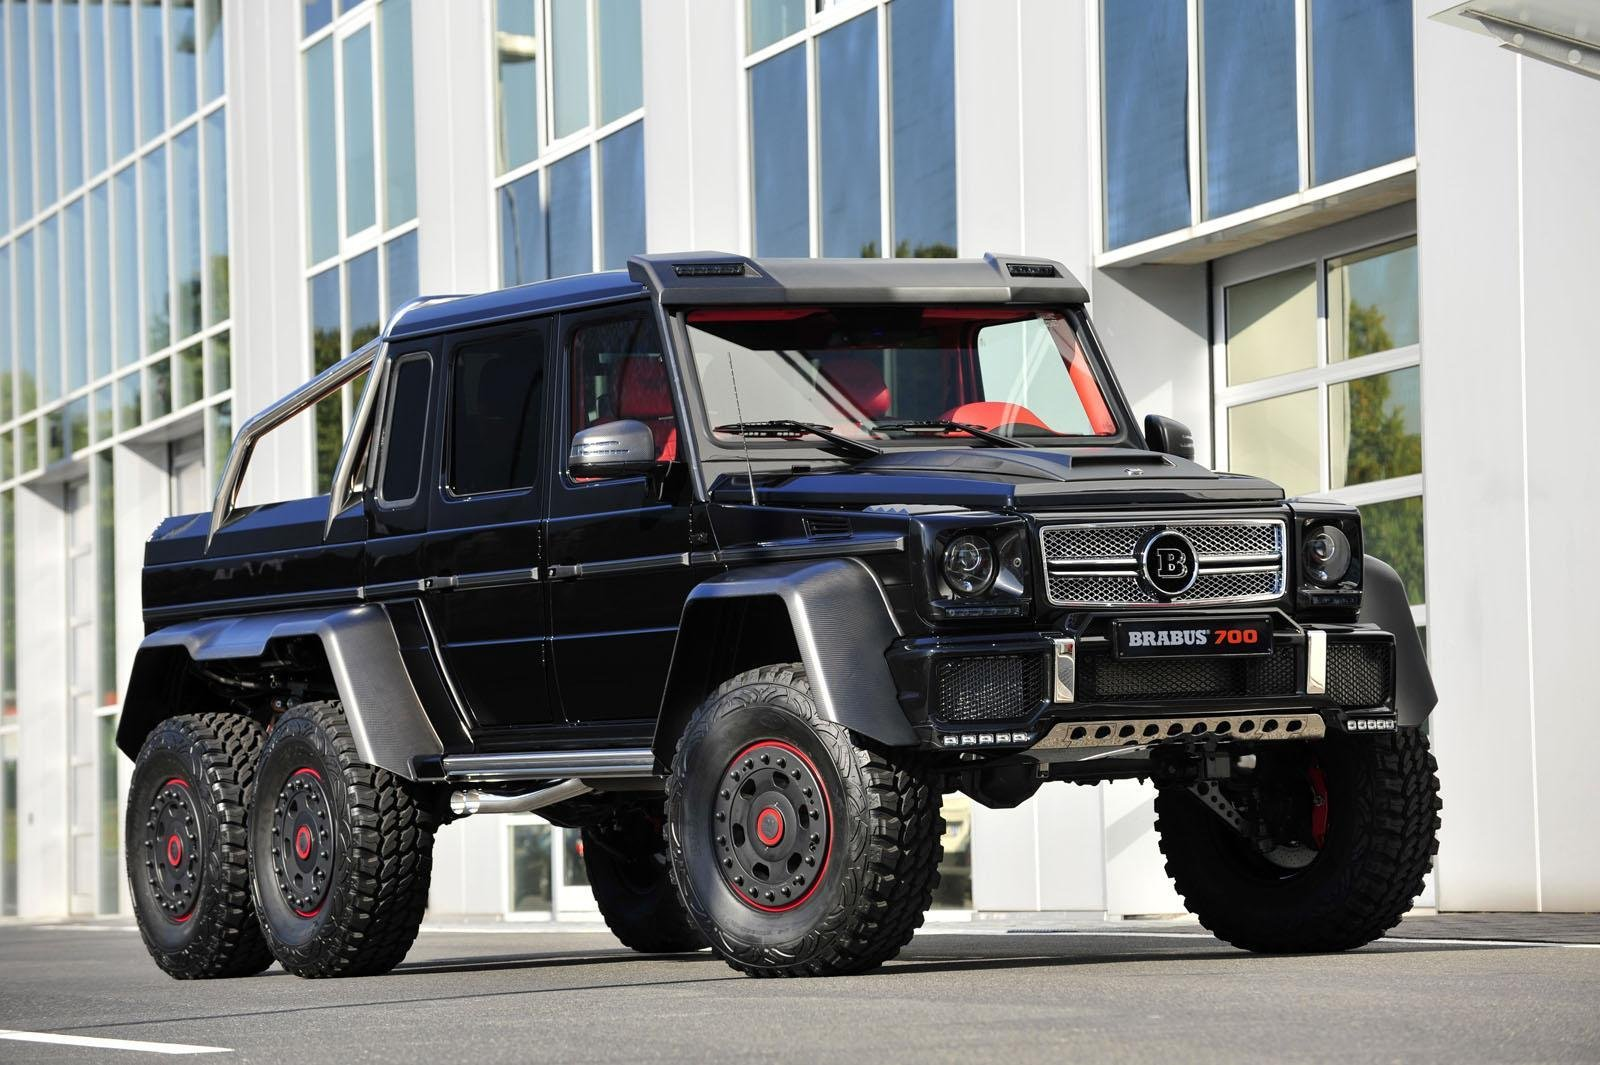 2013 mercedes benz g63 amg 6x6 b63s 700 by brabus top speed. Black Bedroom Furniture Sets. Home Design Ideas